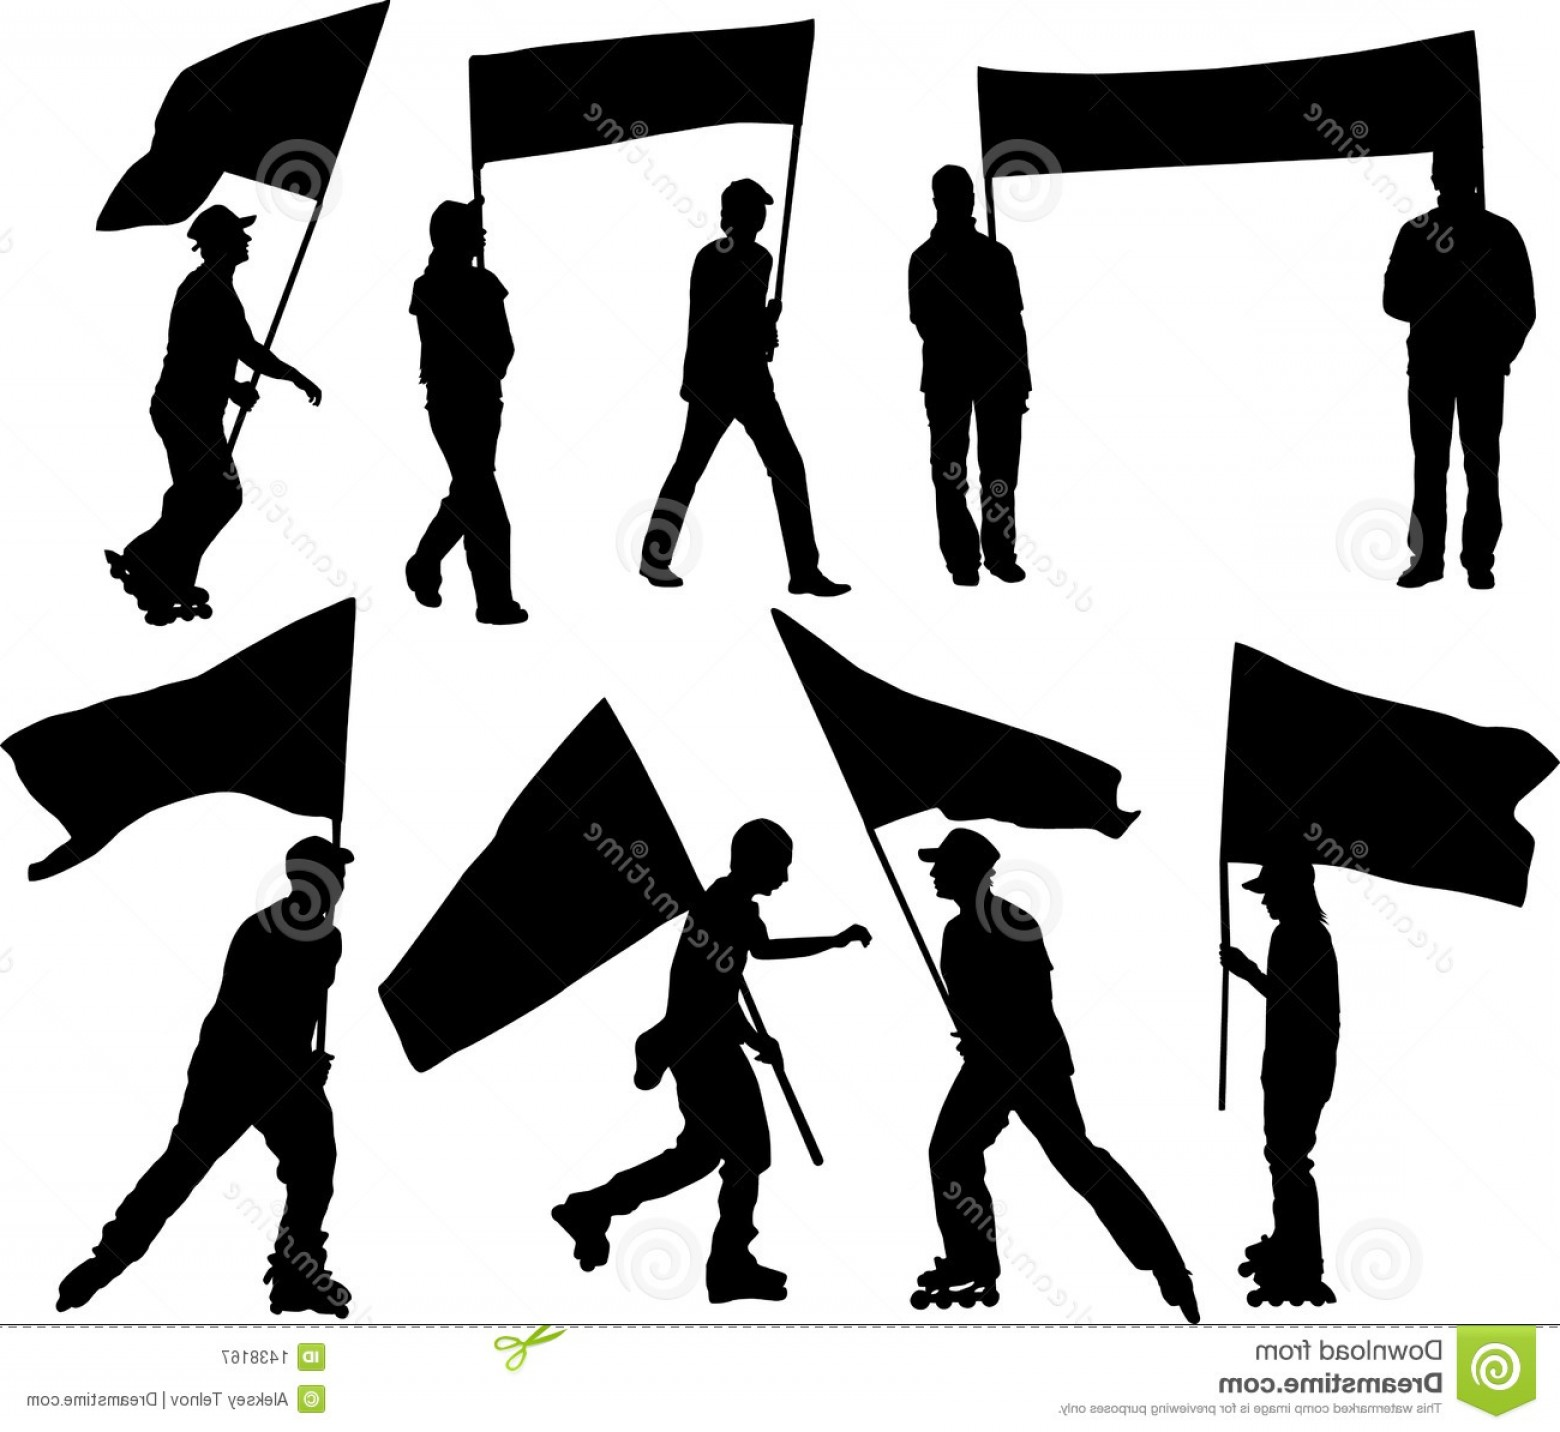 Color Guard Silhouette Vector: Royalty Free Stock Photography Vector Silhouettes Man Women Flag Transparency Image